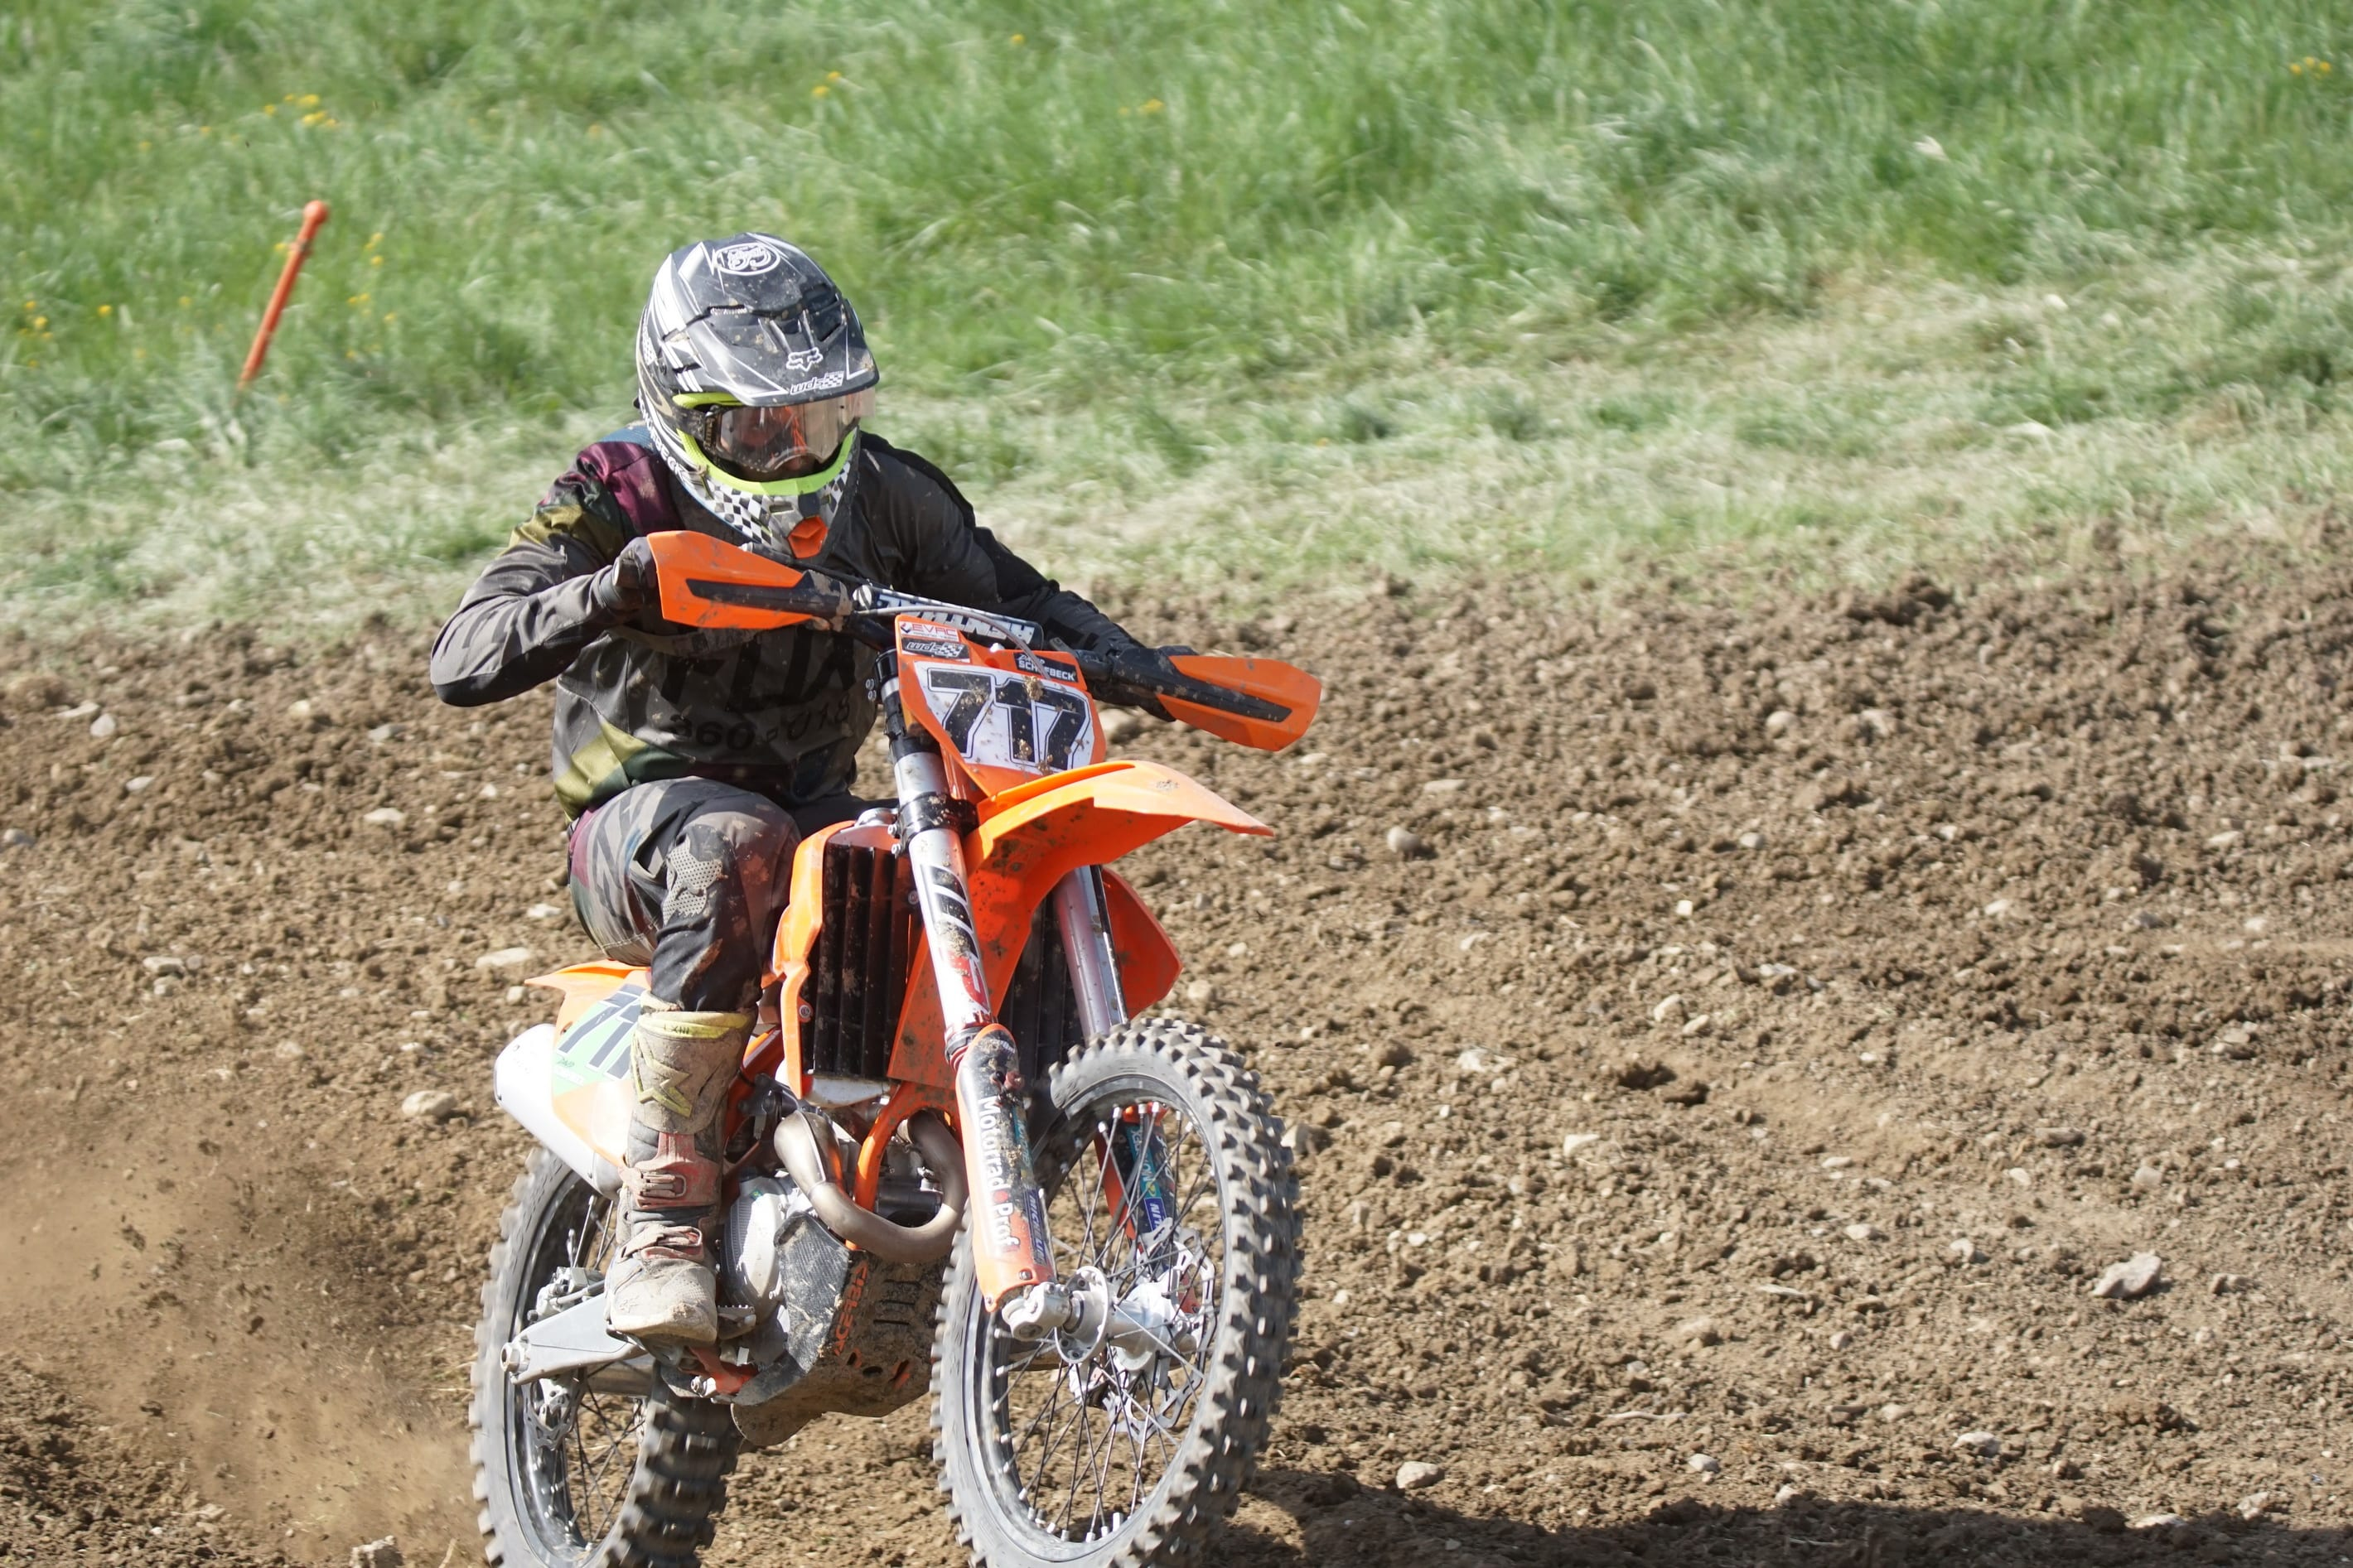 DSC 841_Moto Cross Sittendorf Teil1 am 29.04.2018